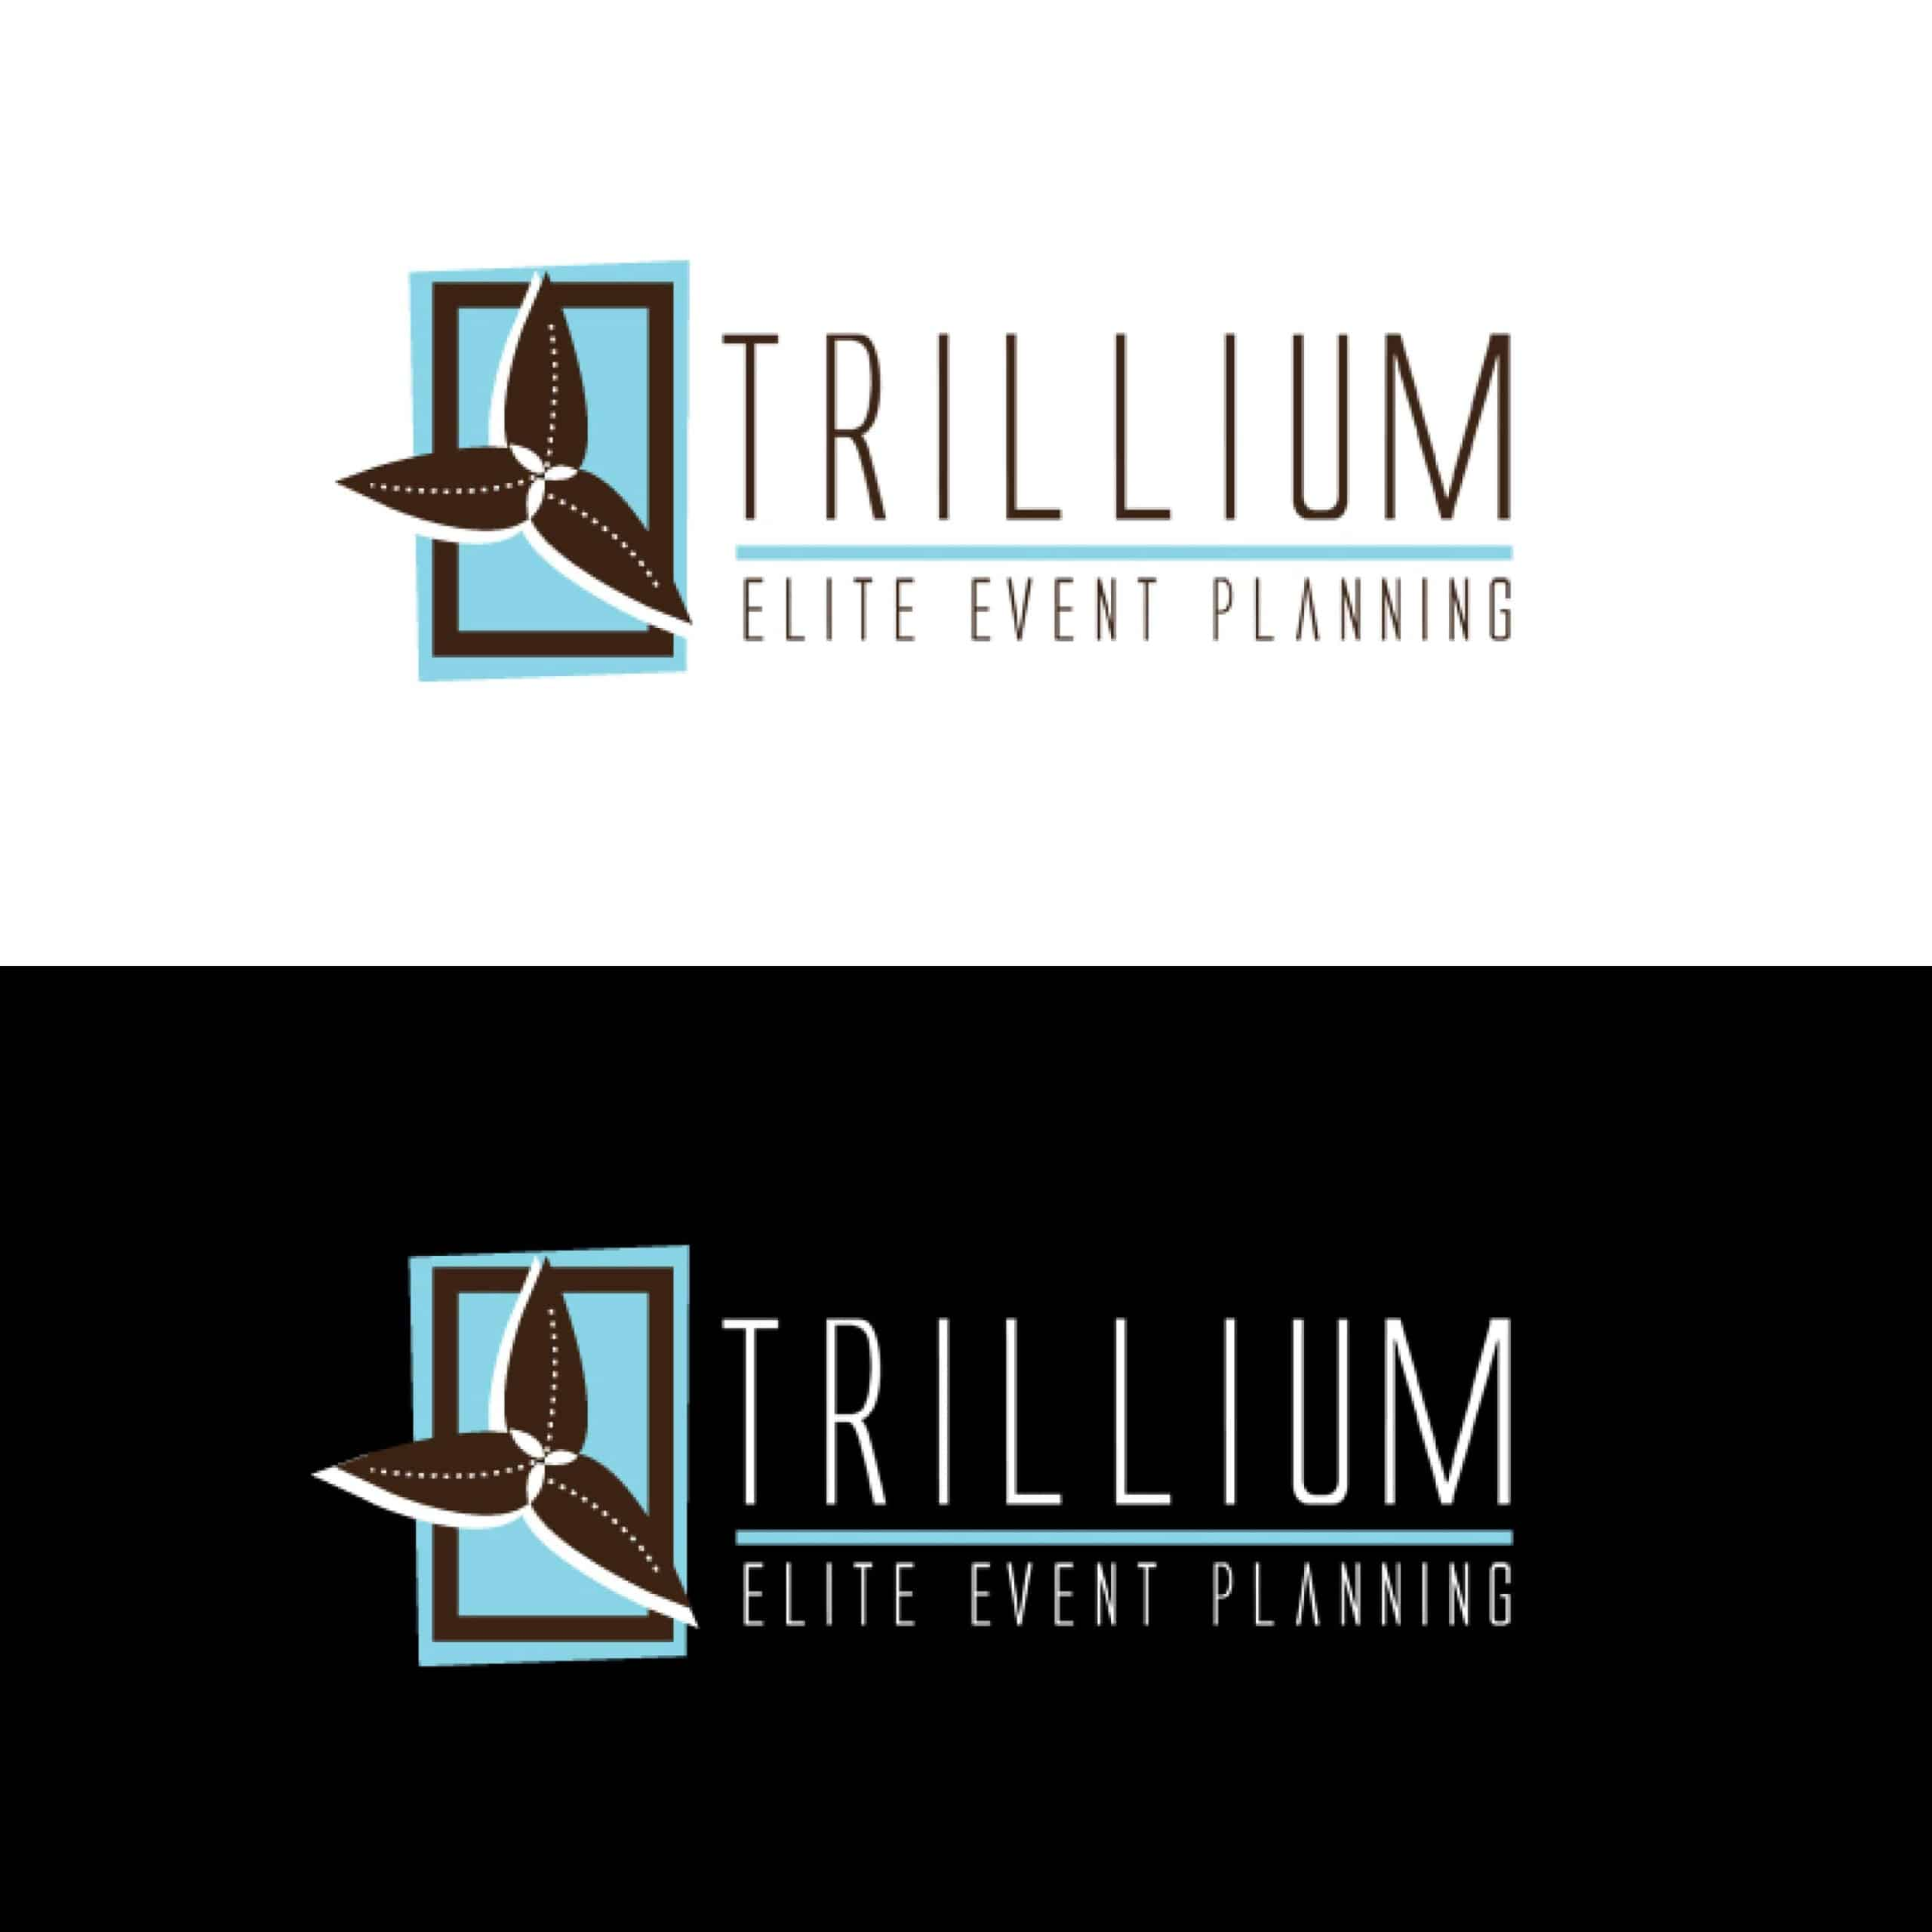 Trillium - Branding & Marketing